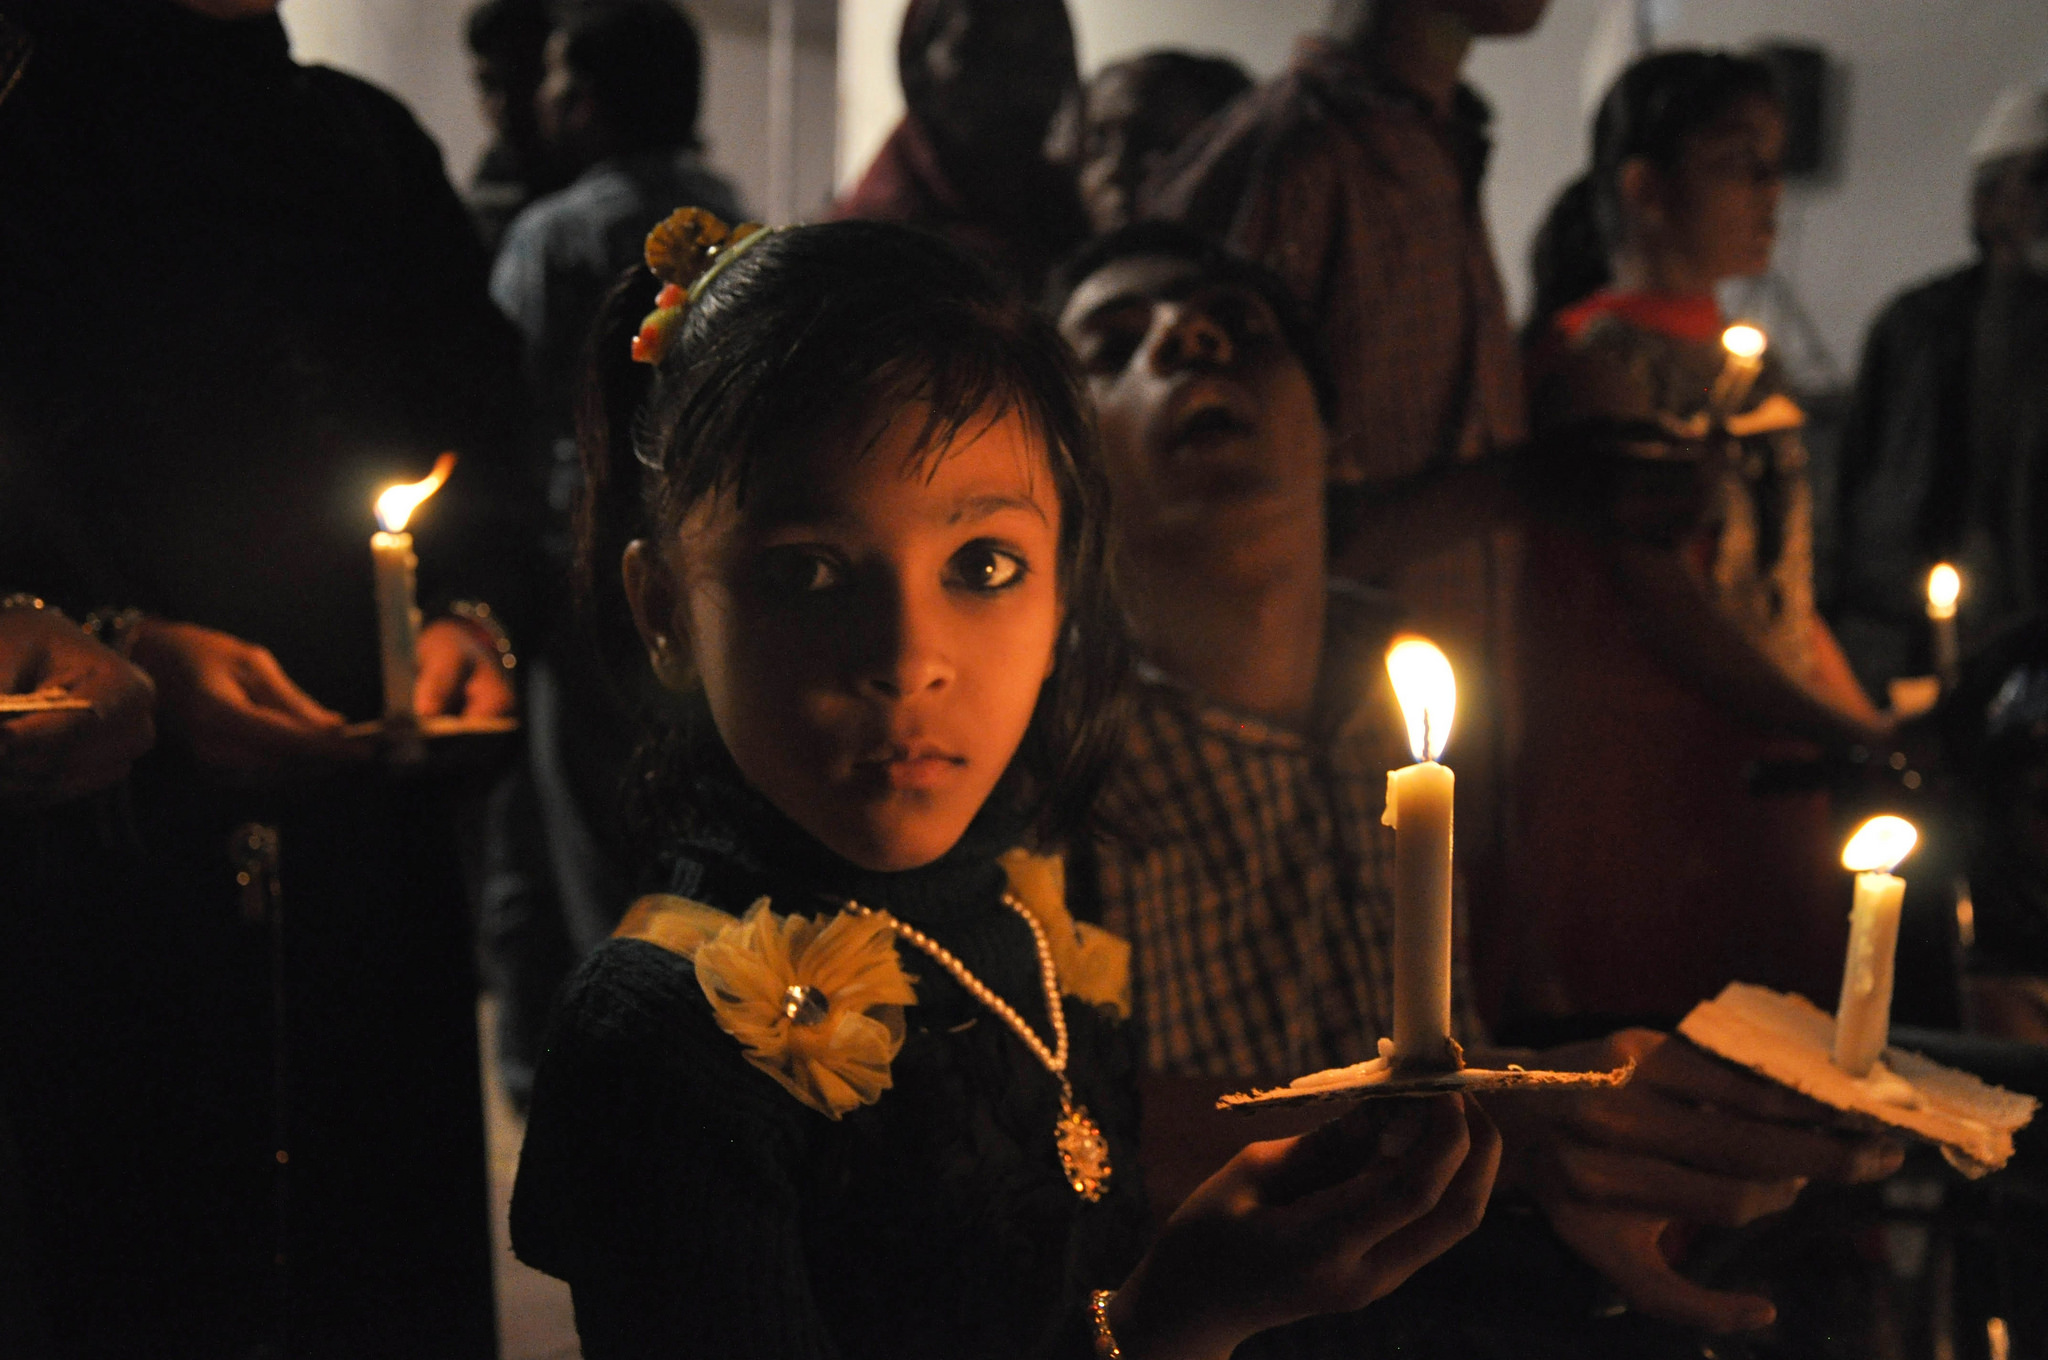 Proof that Bhopal Gas is Now Claiming its Third Generation of Victims